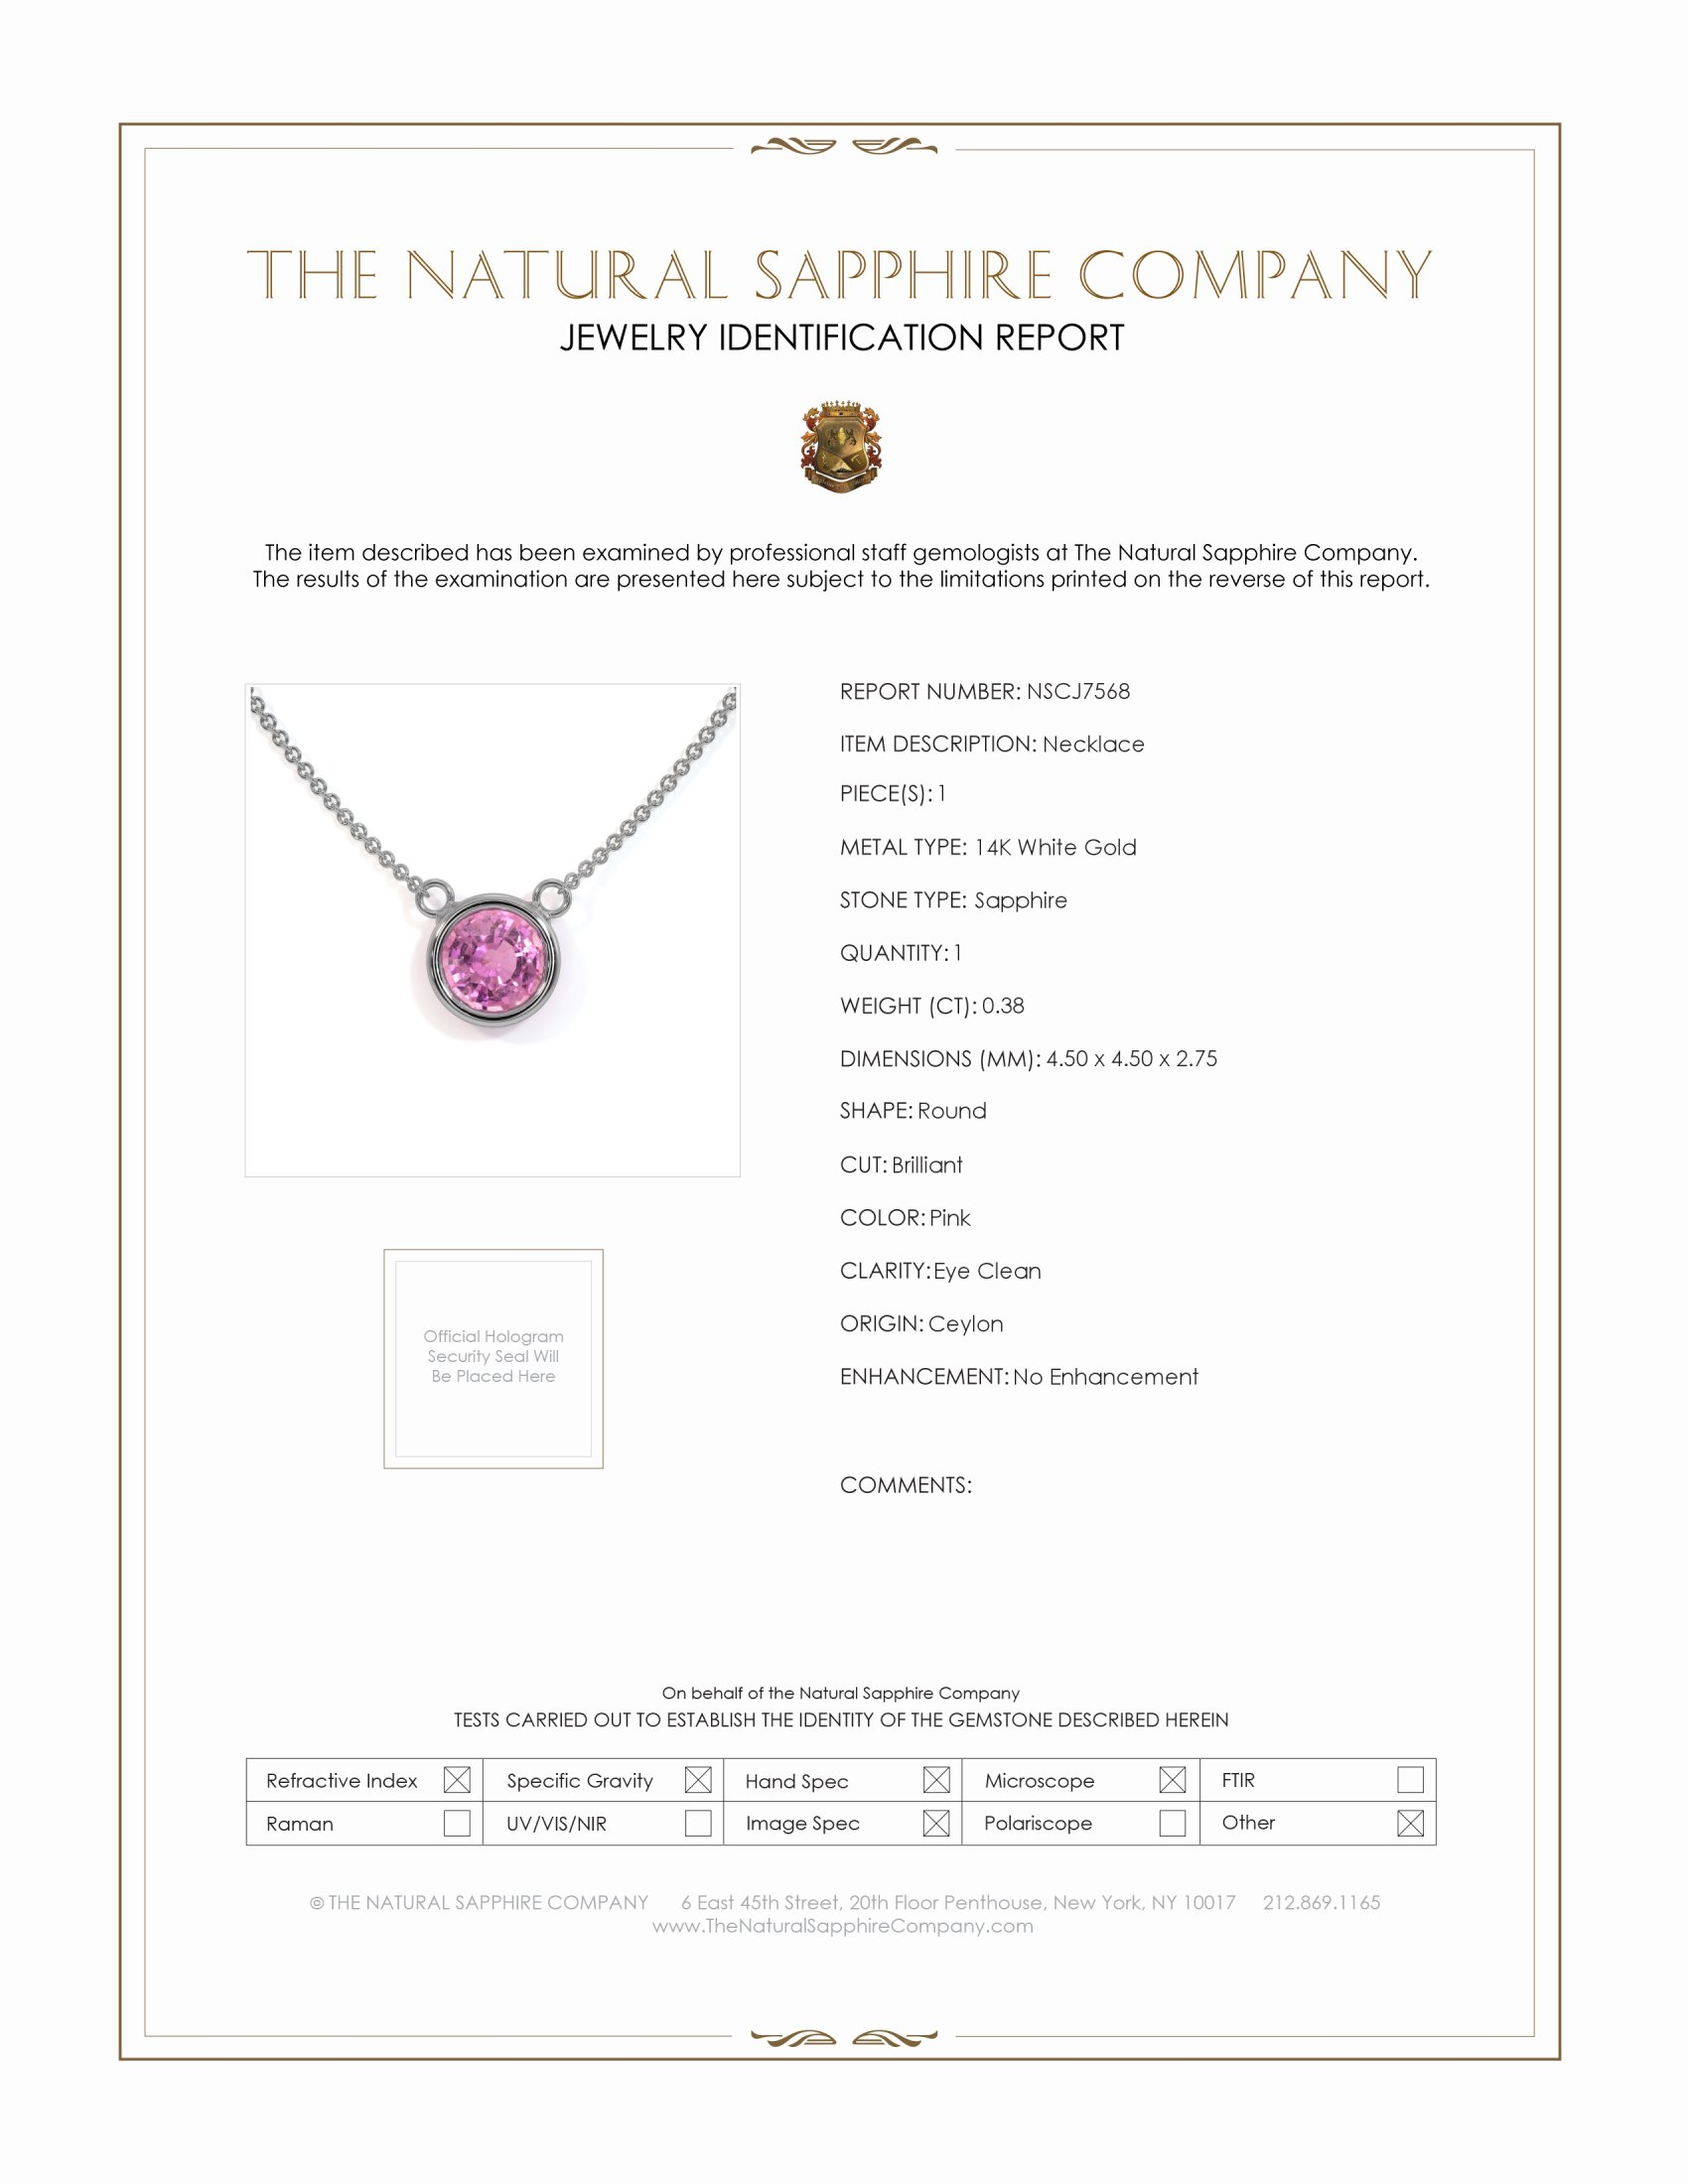 0.38ct Pink Sapphire Necklace Certification